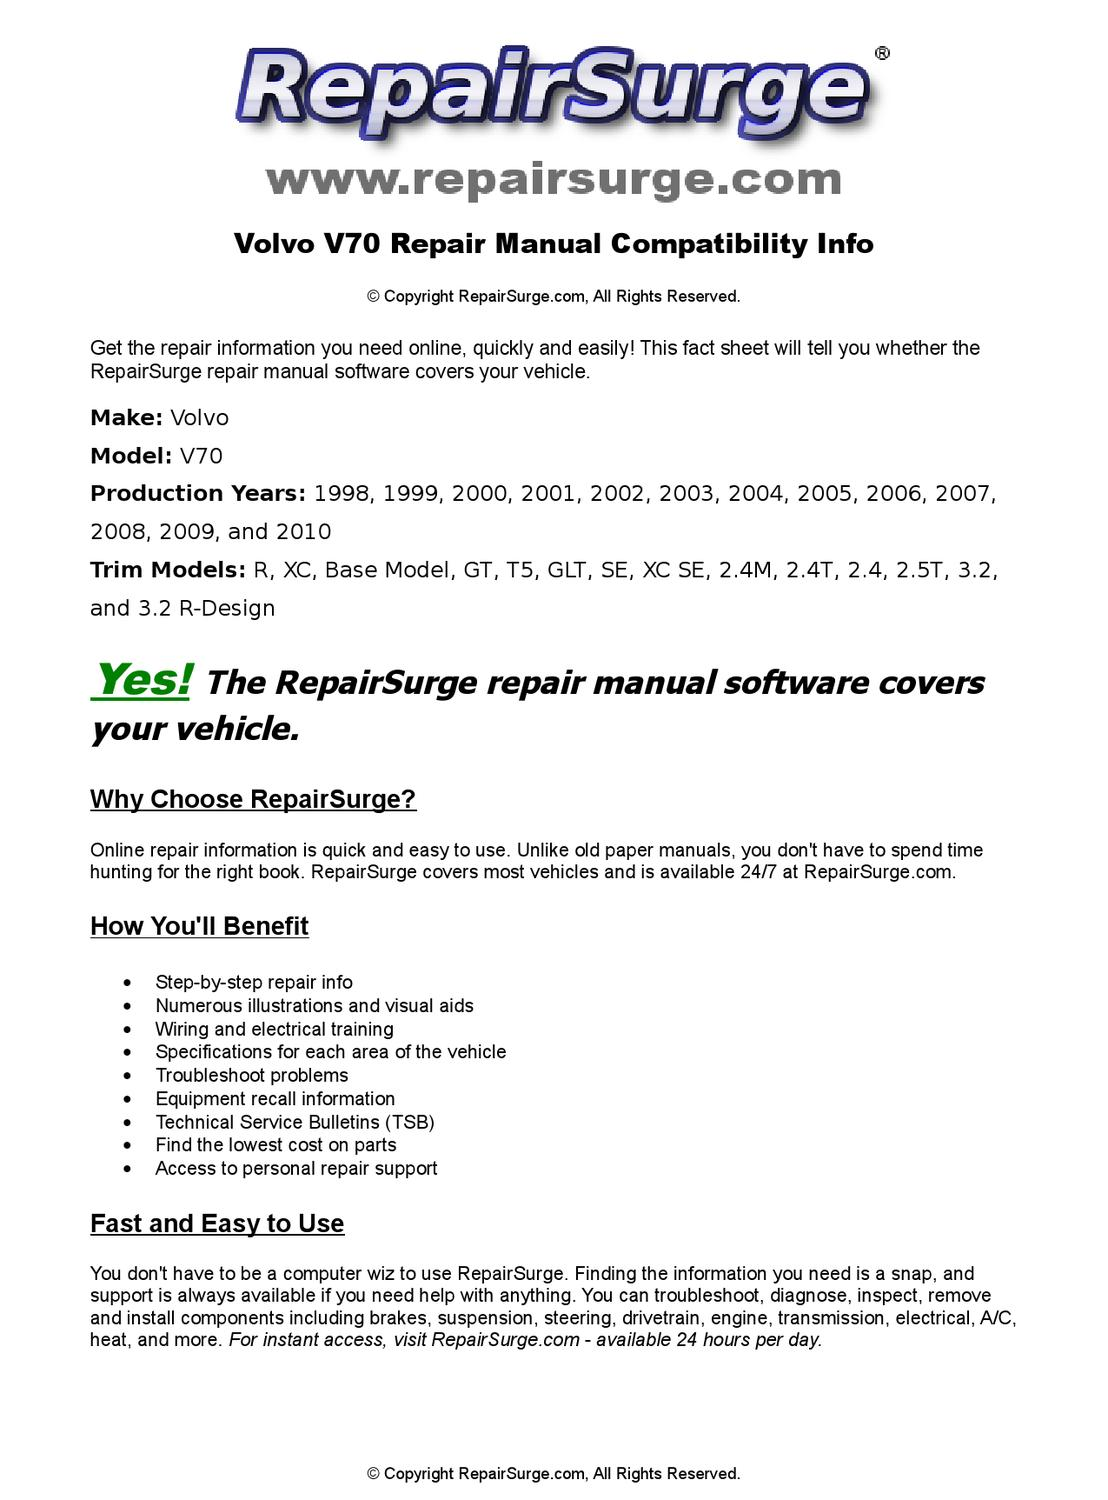 Volvo V70 Online Repair Manual For 1998, 1999, 2000, 2001, 2002, 2003,  2004, 2005, 2006, 2007, 2008, by RepairSurge - issuu